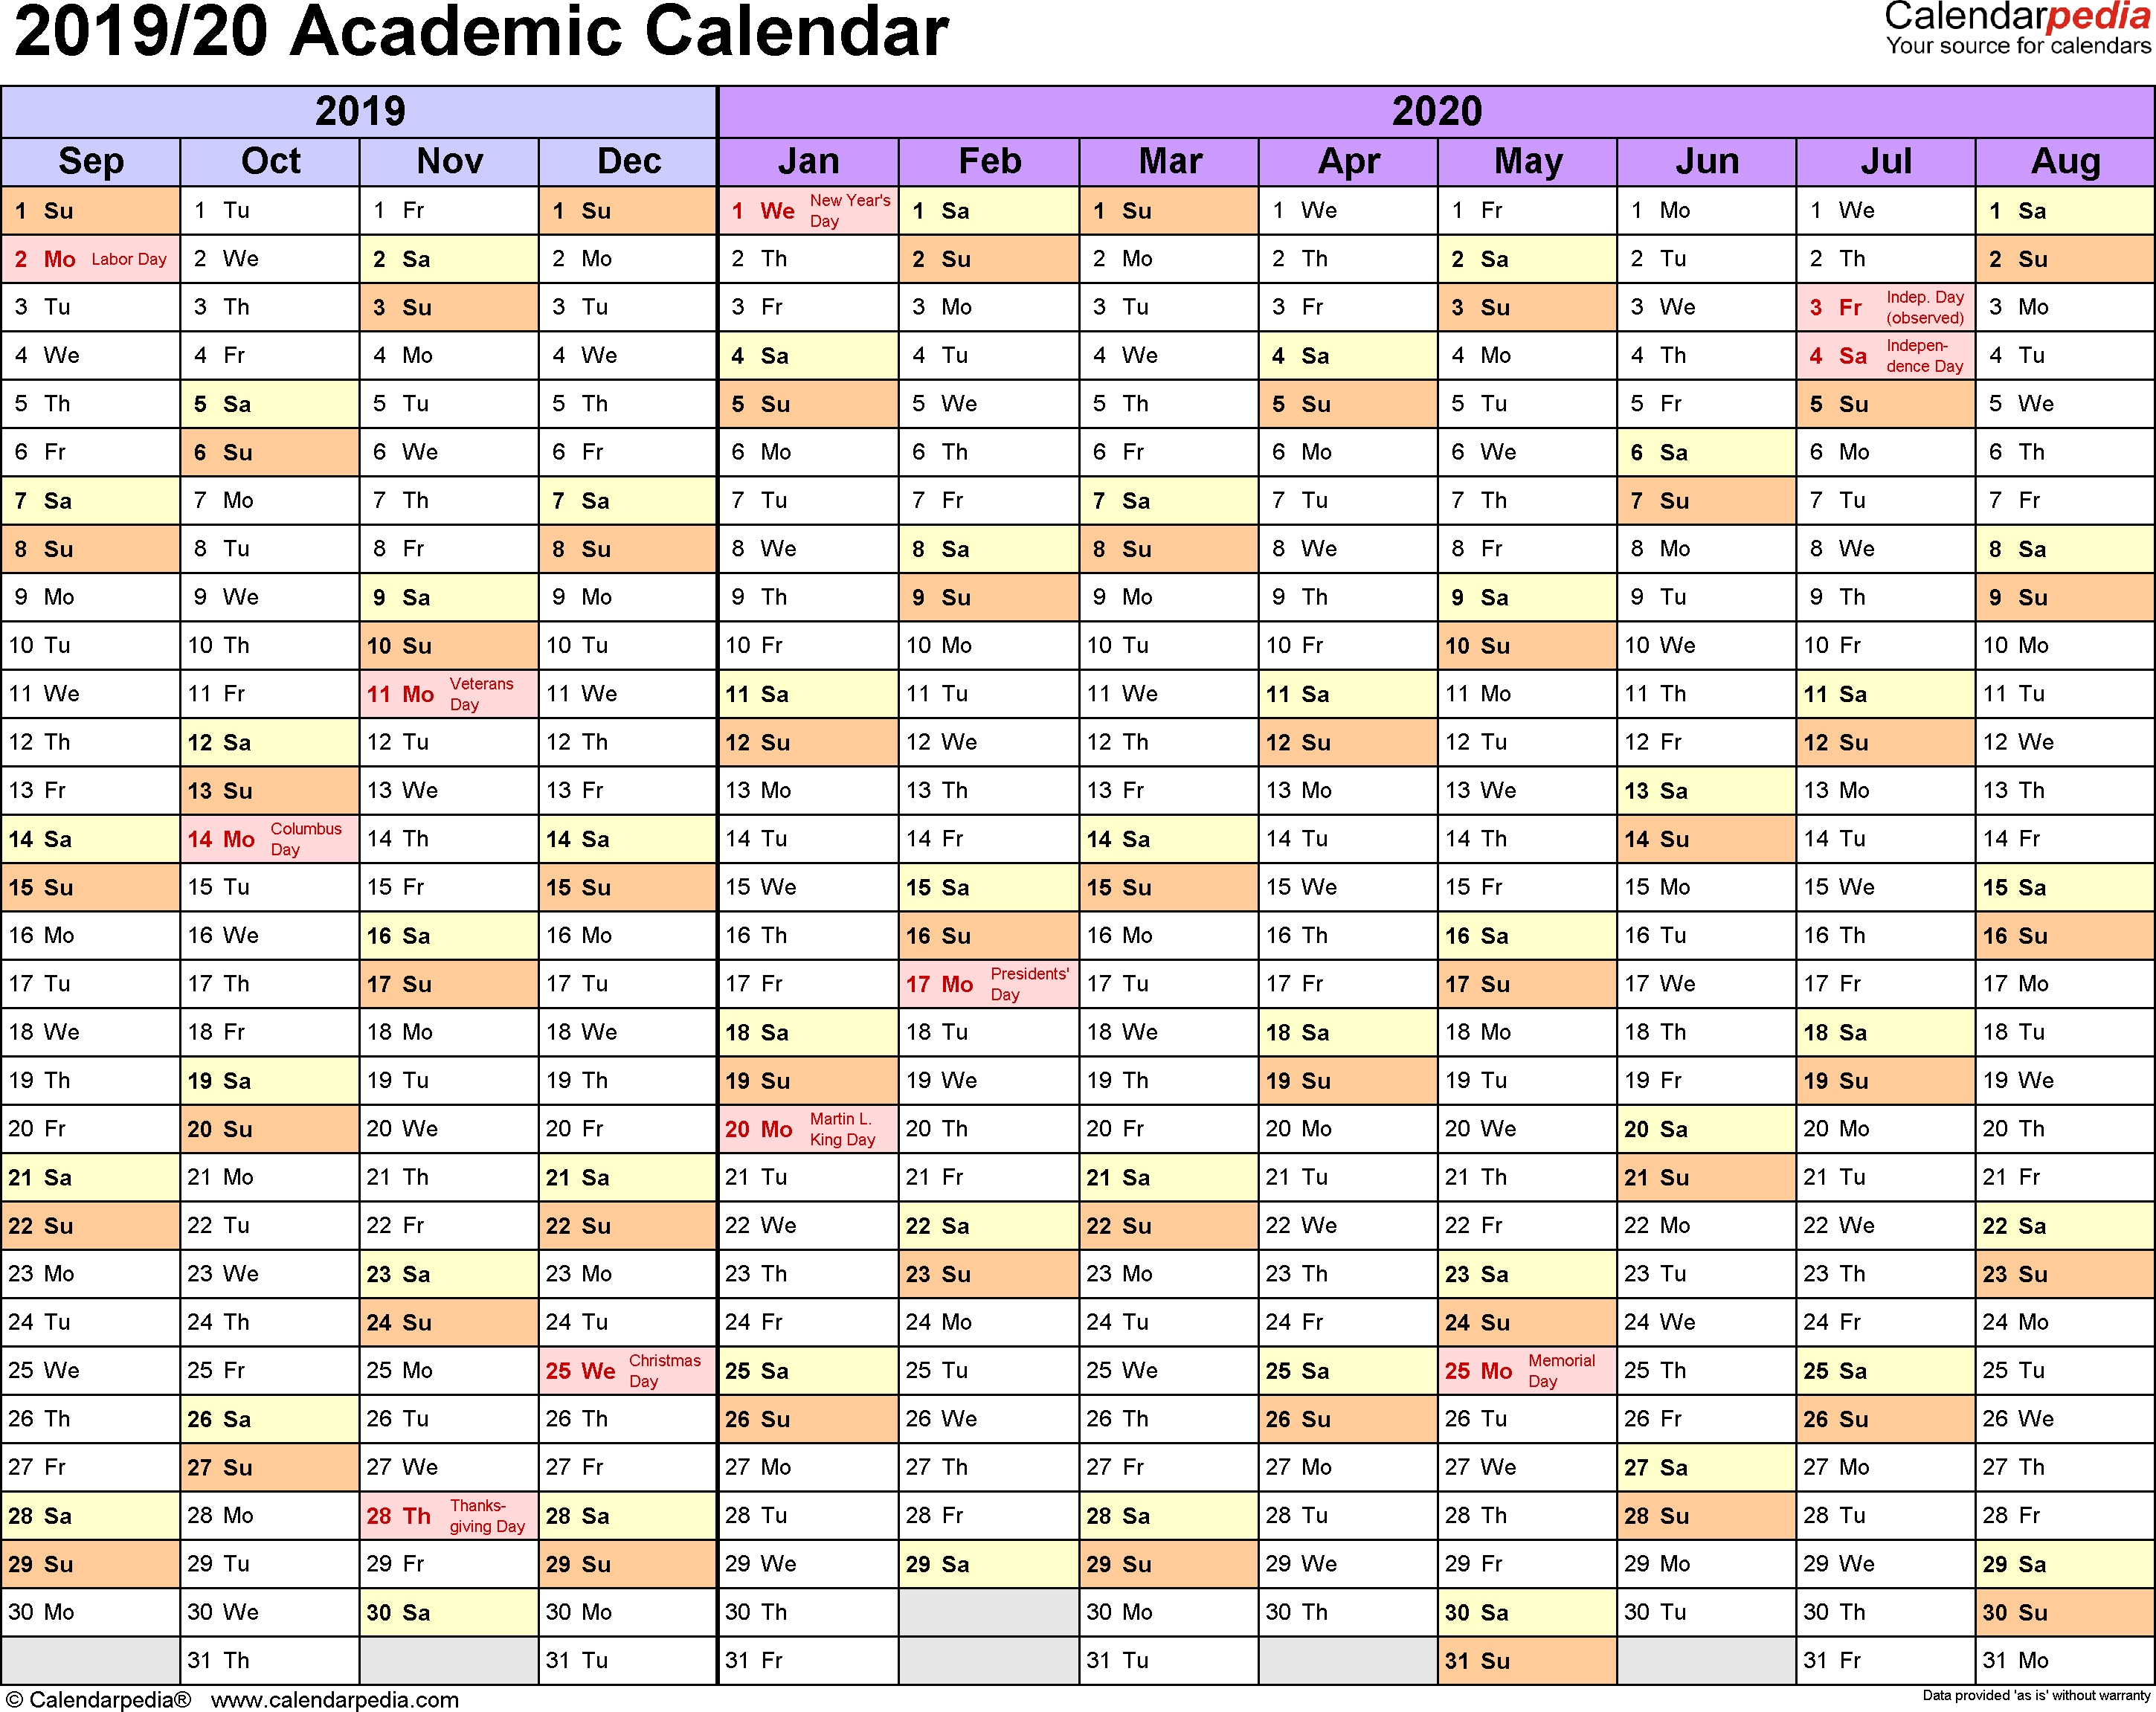 Academic Calendars 2019/2020 - Free Printable Excel Templates intended for List Dates Spreadhsheet For 2019-2020